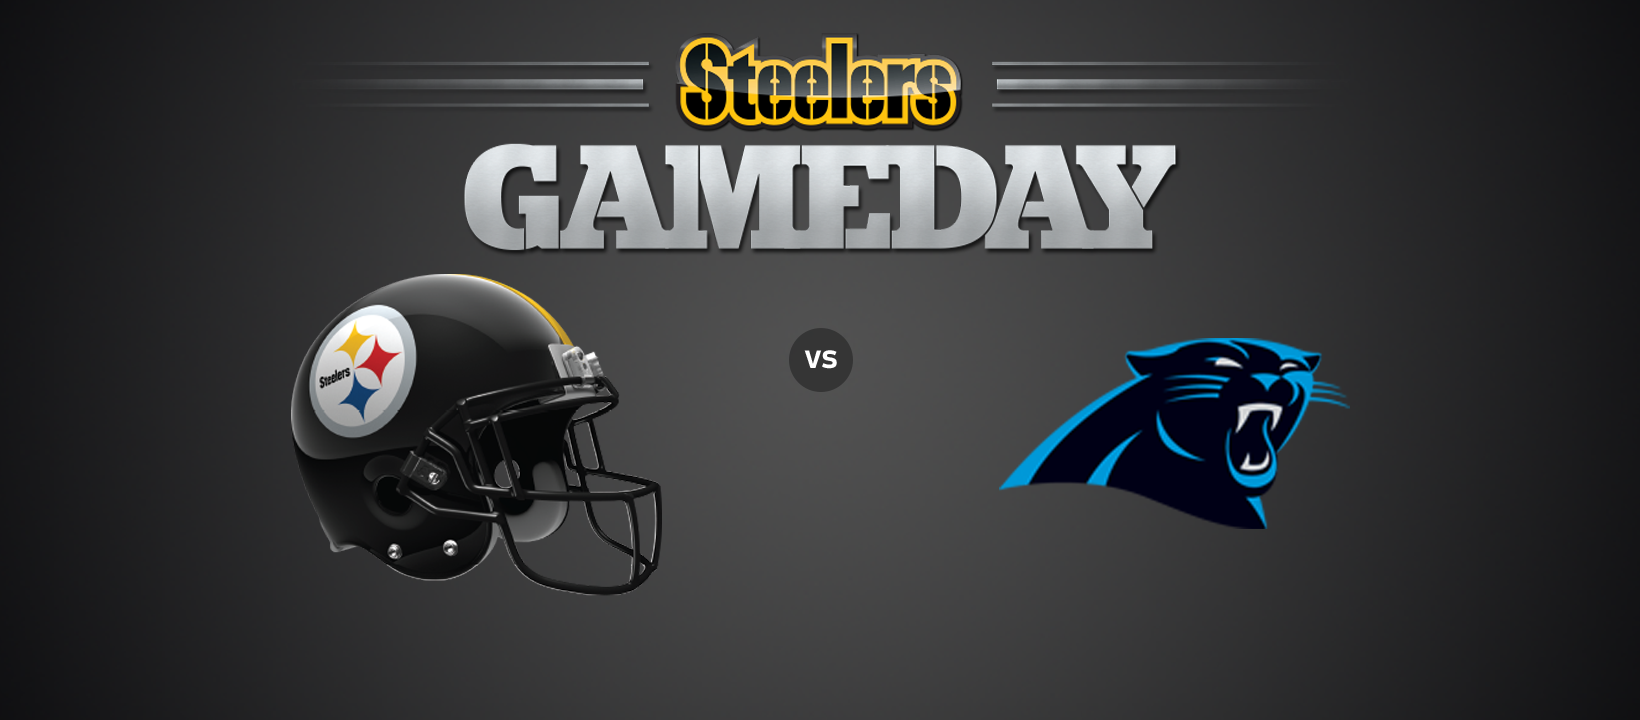 2018 Steelers vs. Panthers